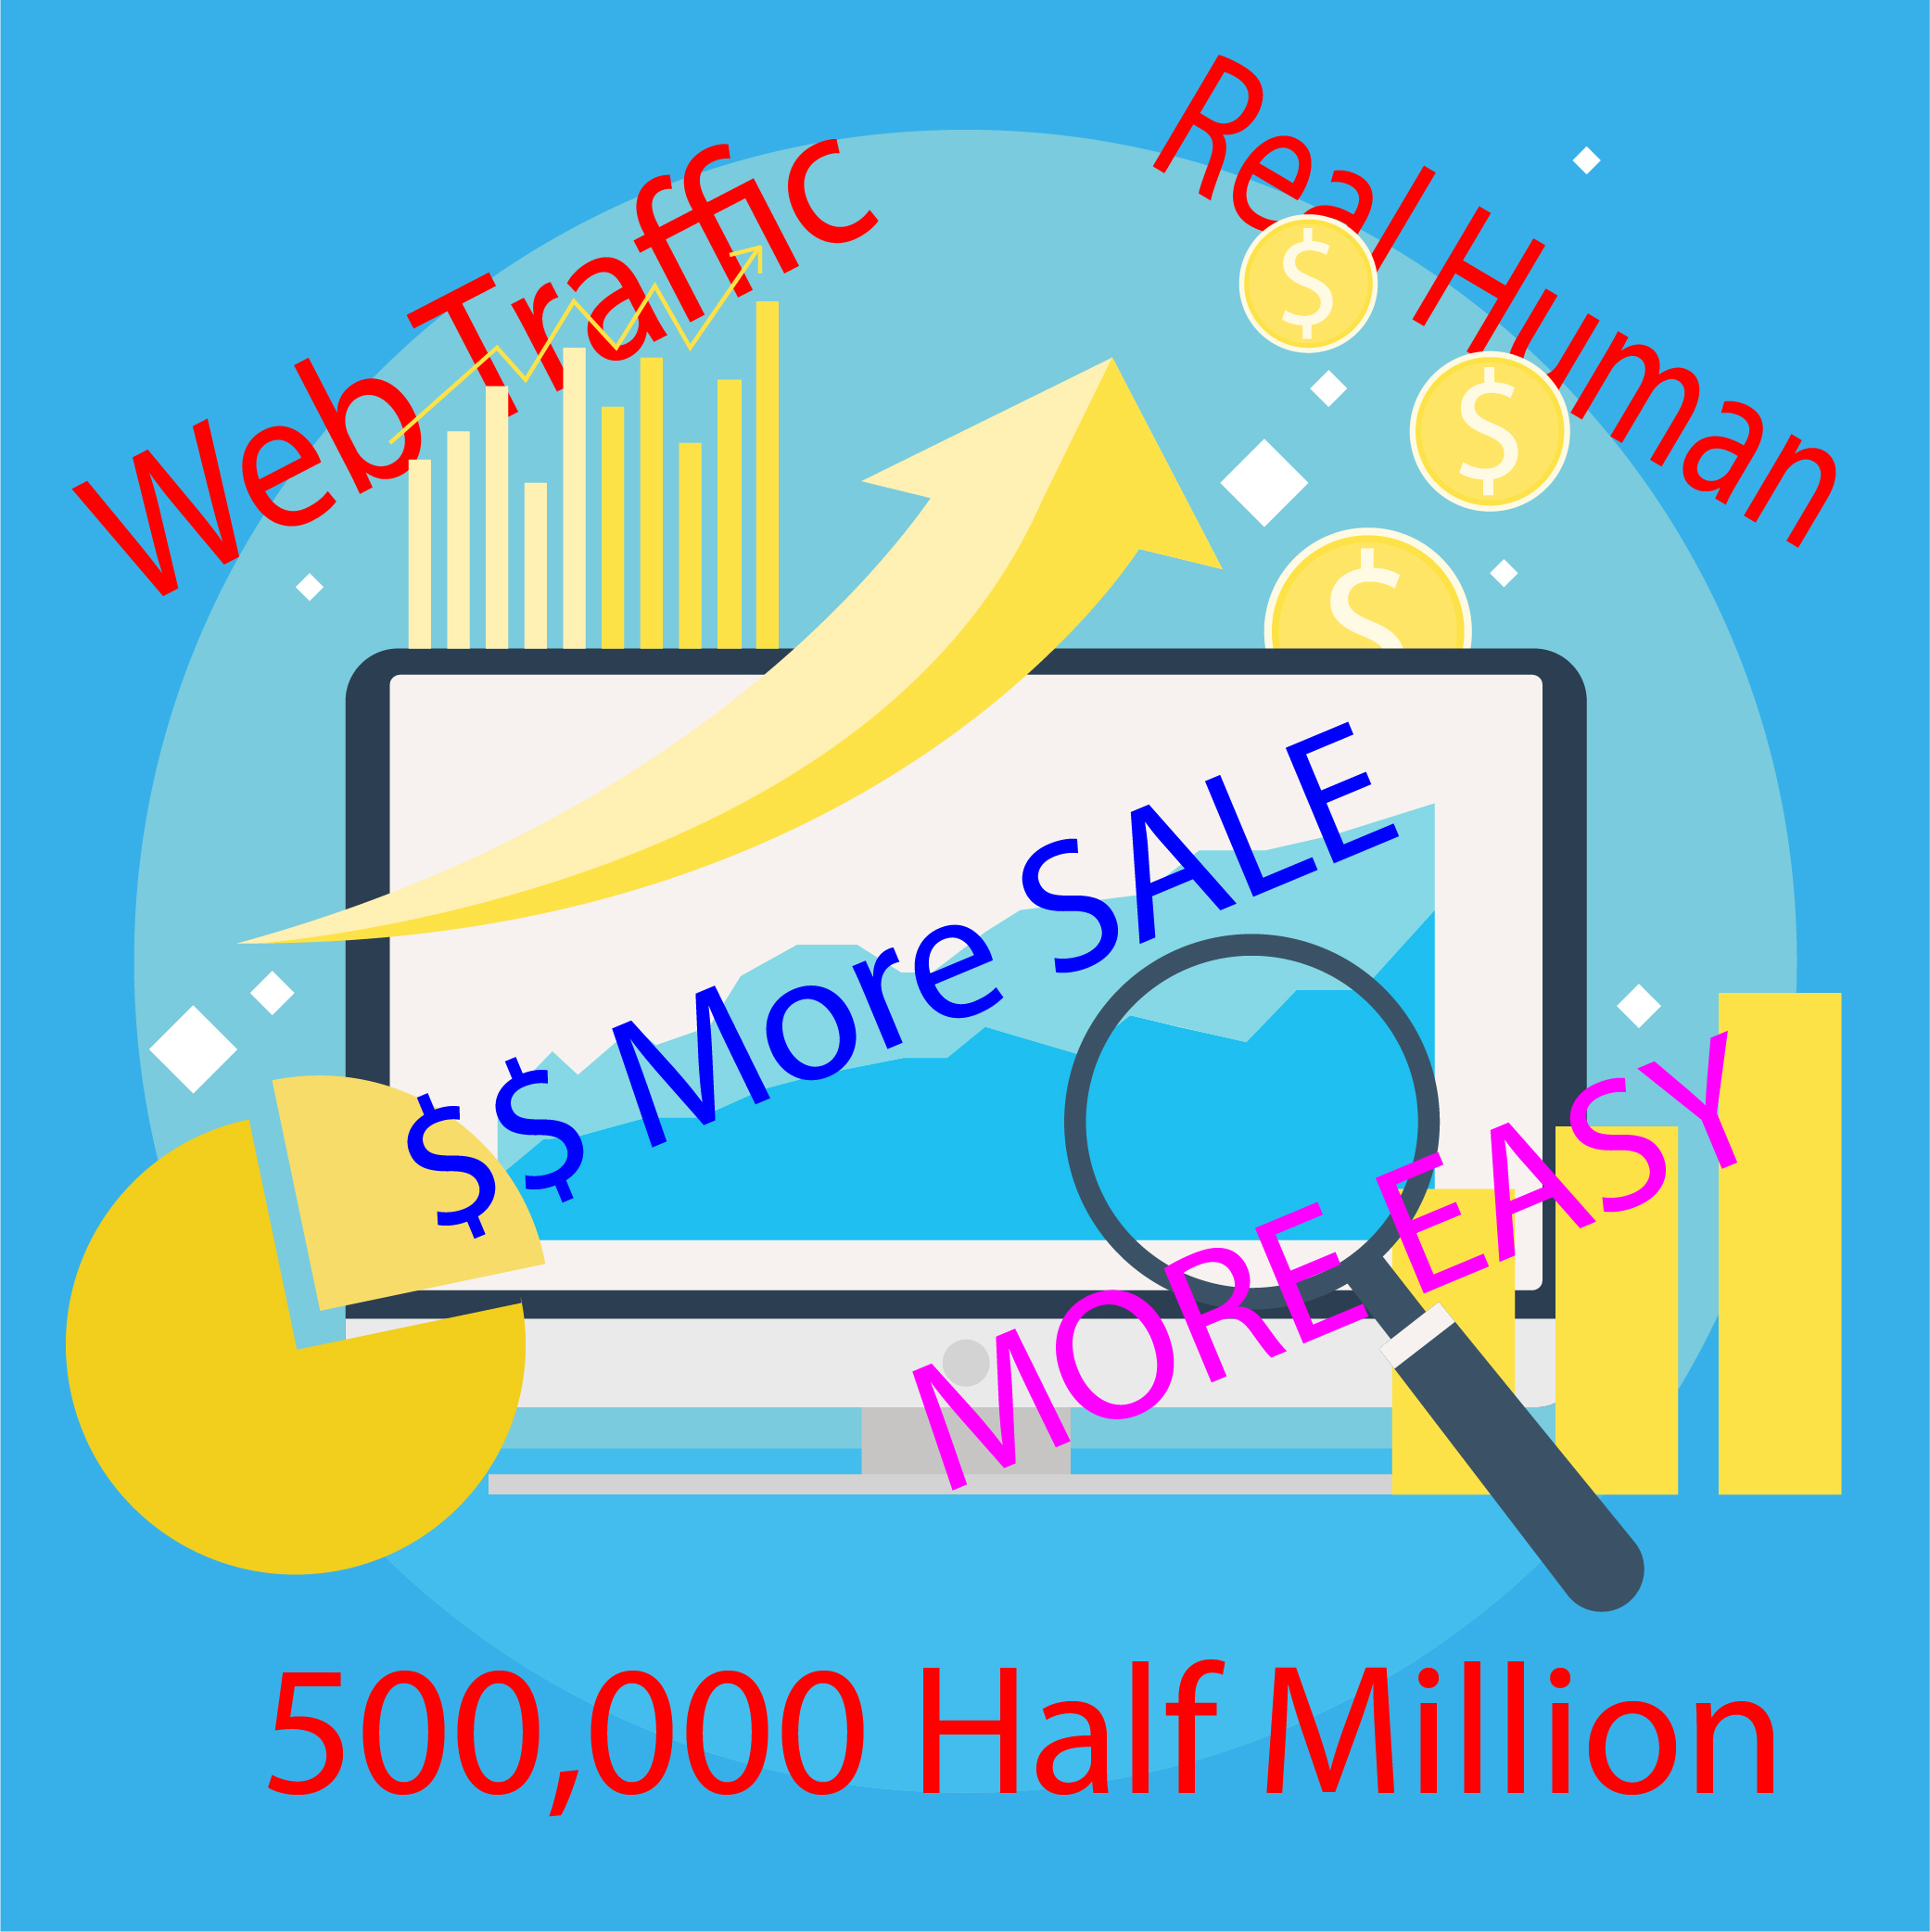 I WILL GENERATE 500,000 Half Million WEB TRAFFIC